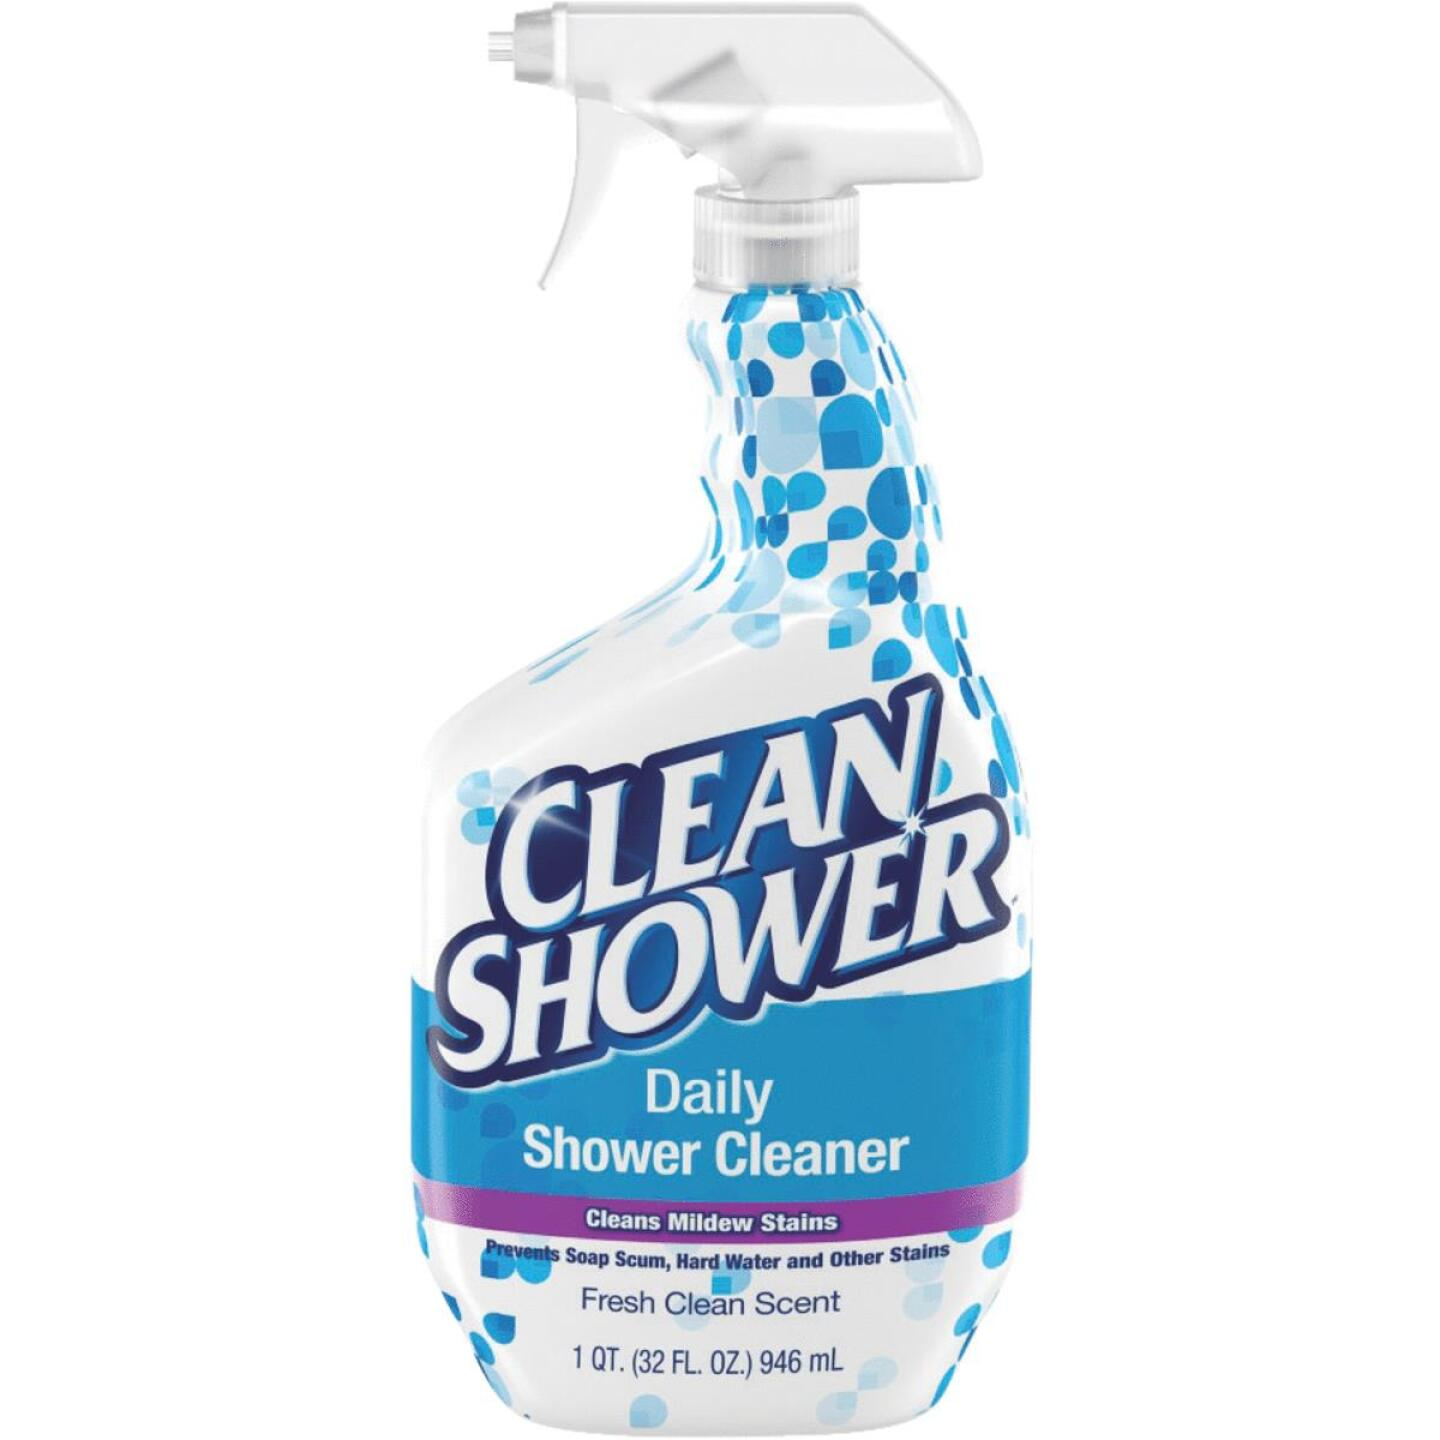 Arm & Hammer 32 Oz. Fresh Scent Clean Shower Daily Shower Cleaner Image 1